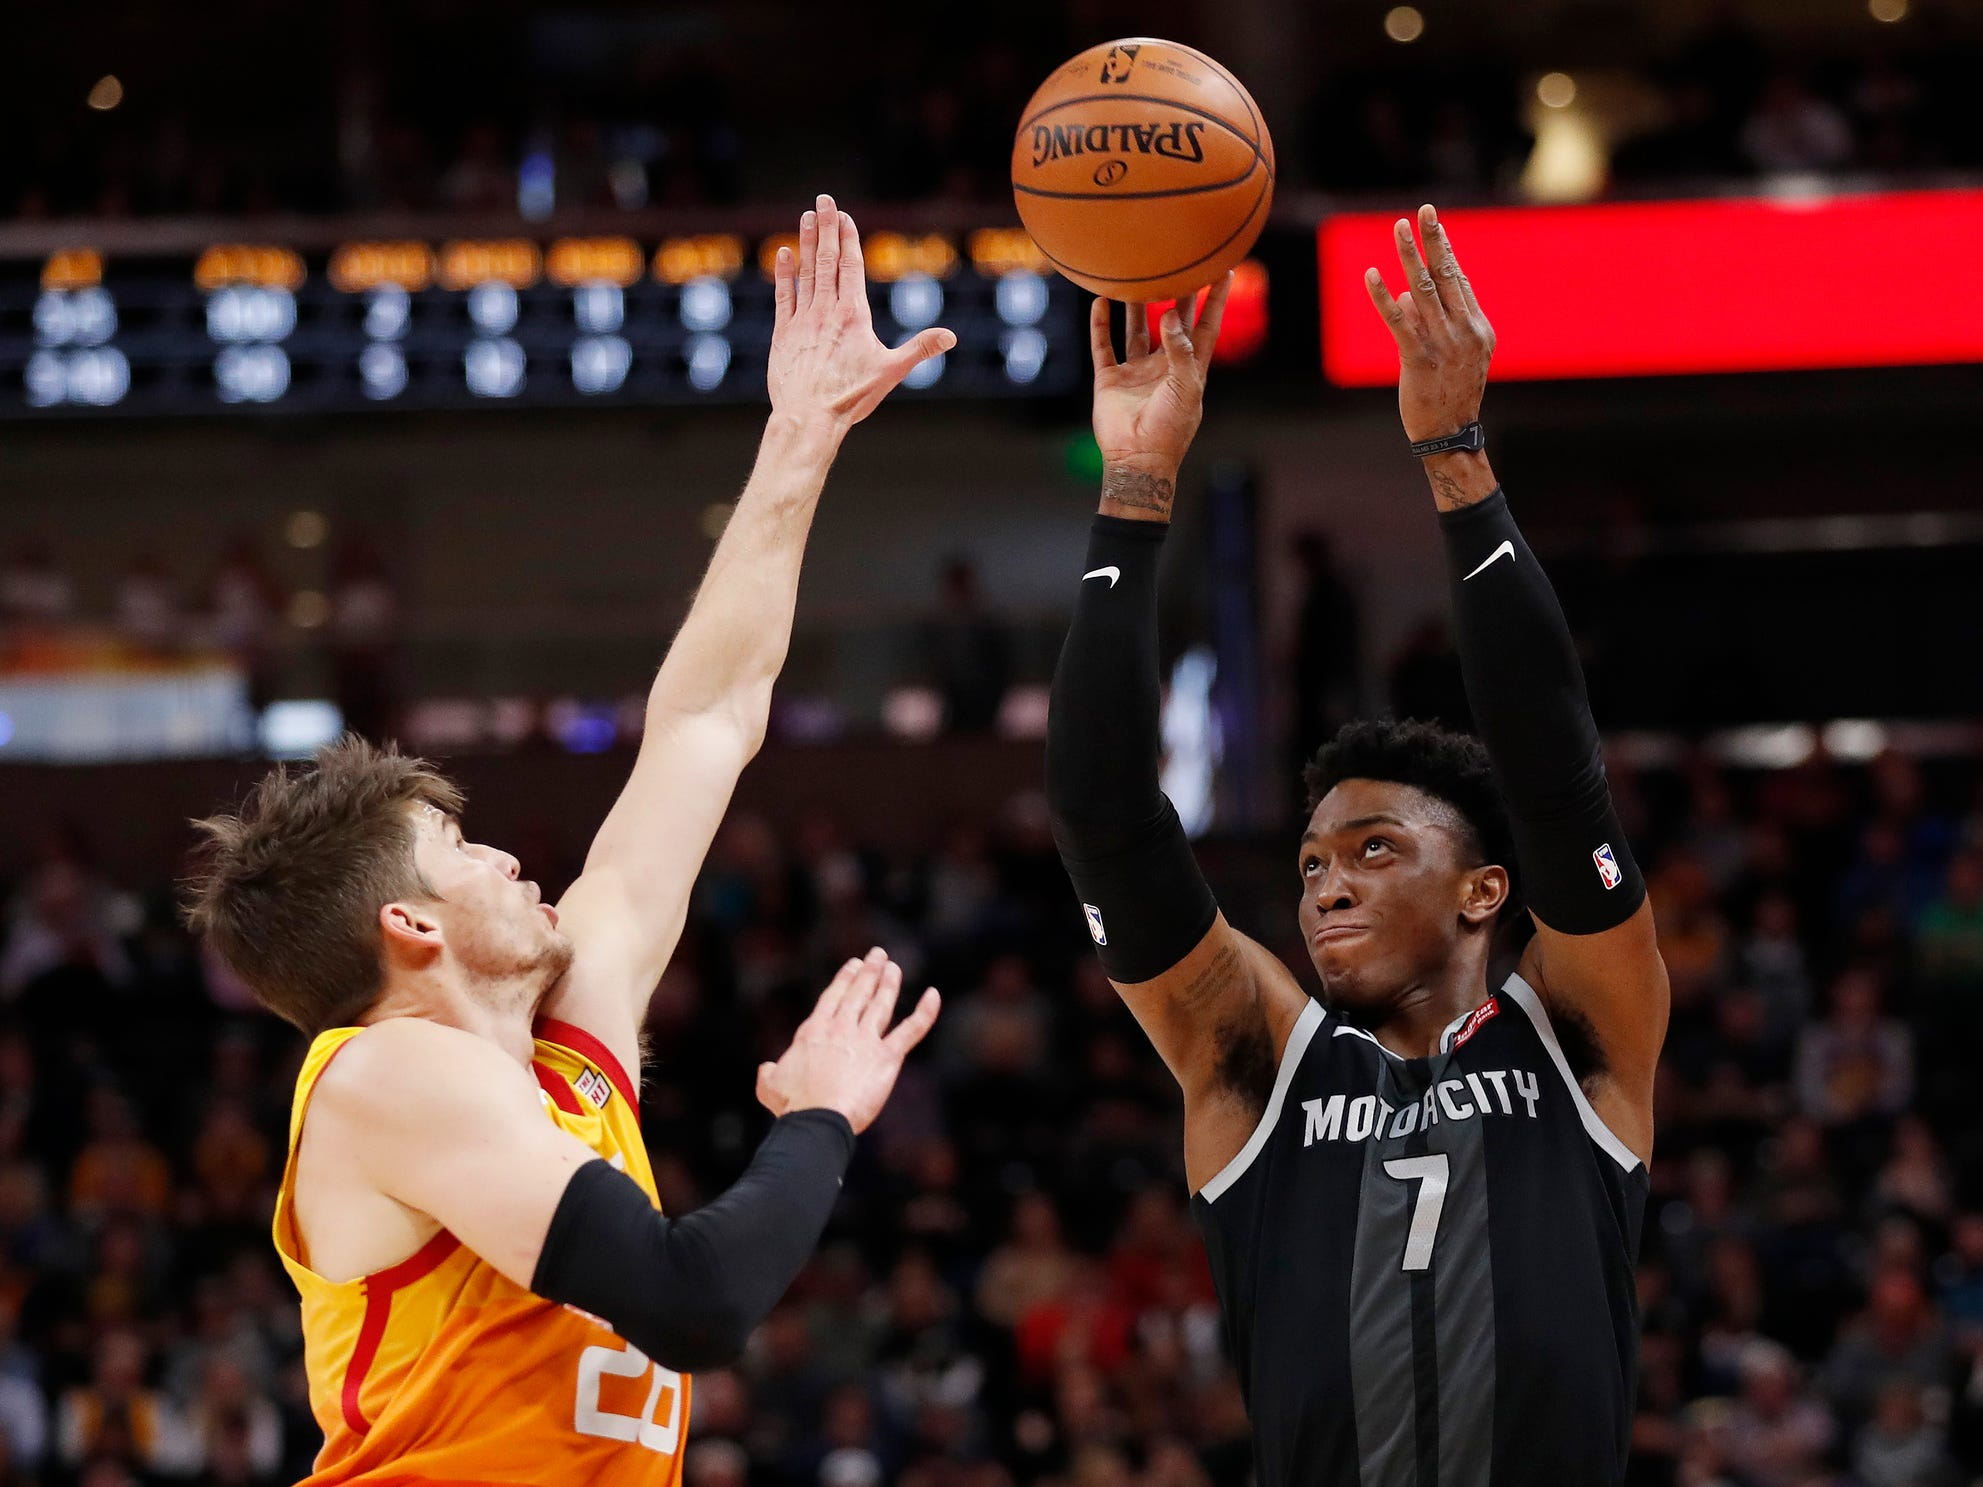 Pistons forward Stanley Johnson shoots against Jazz guard Kyle Korver in the second quarter of the 100-94 loss to the Jazz on Monday, Jan. 14, 2019, in Salt Lake City.